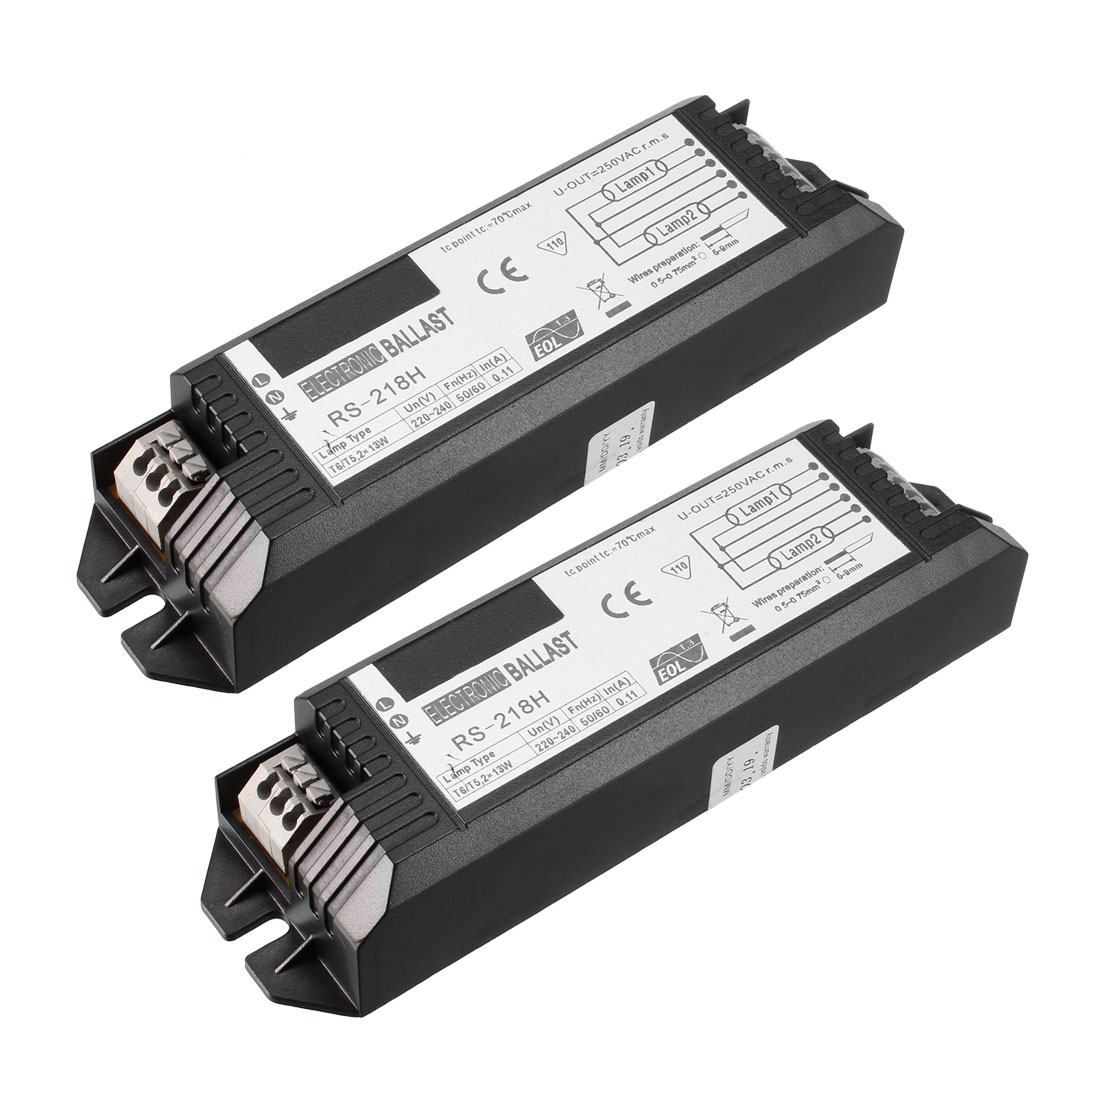 Electronic Ballast 220/240-Volt 13Watt Fluorescent Lamp T5 Ballasts 2pcs